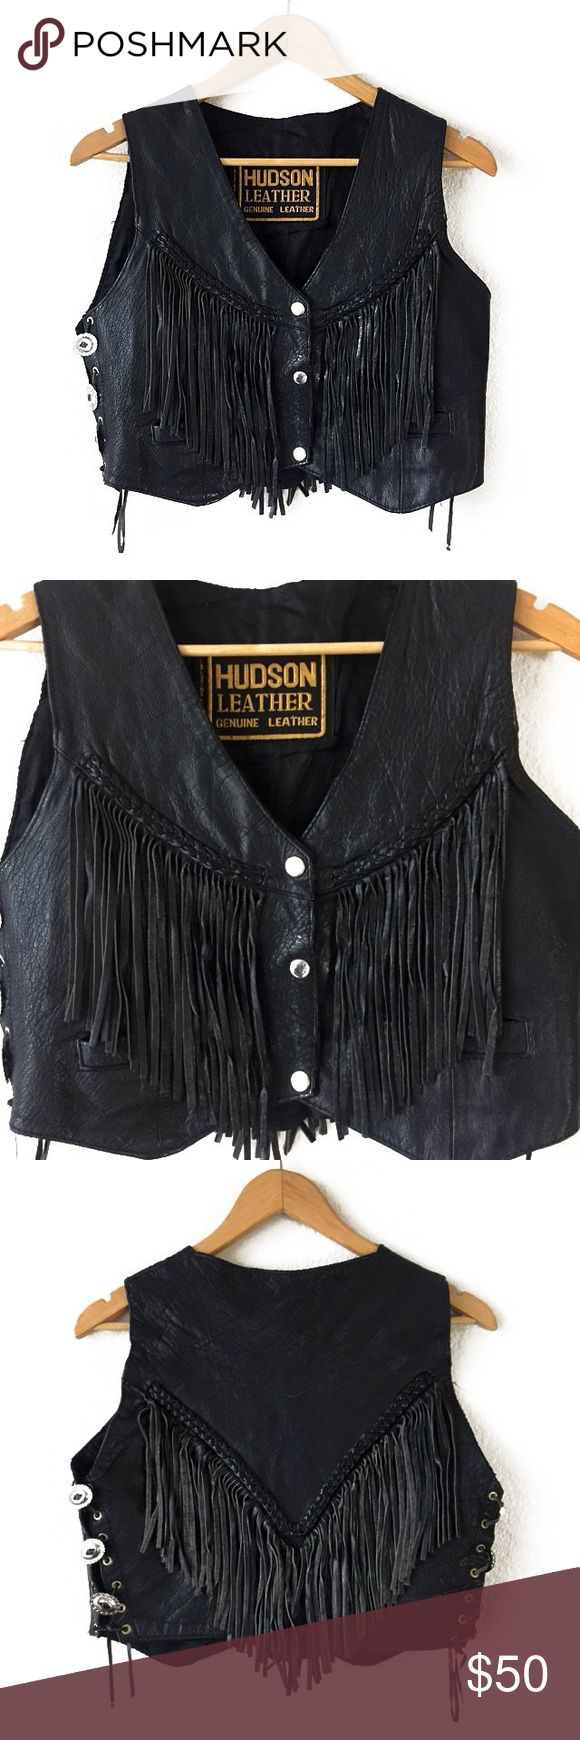 """90s VINTAGE GENUINE HUDSON LEATHER BIKER VEST 90s VINTAGE GENUINE HUDSON LEATHER BIKER VEST Excellent condition Size: S Fabric: Leather Length: 17"""" (top to bottom) Chest: 18"""" (armpit to armpit lying flat) Next Day Shipping Tops"""